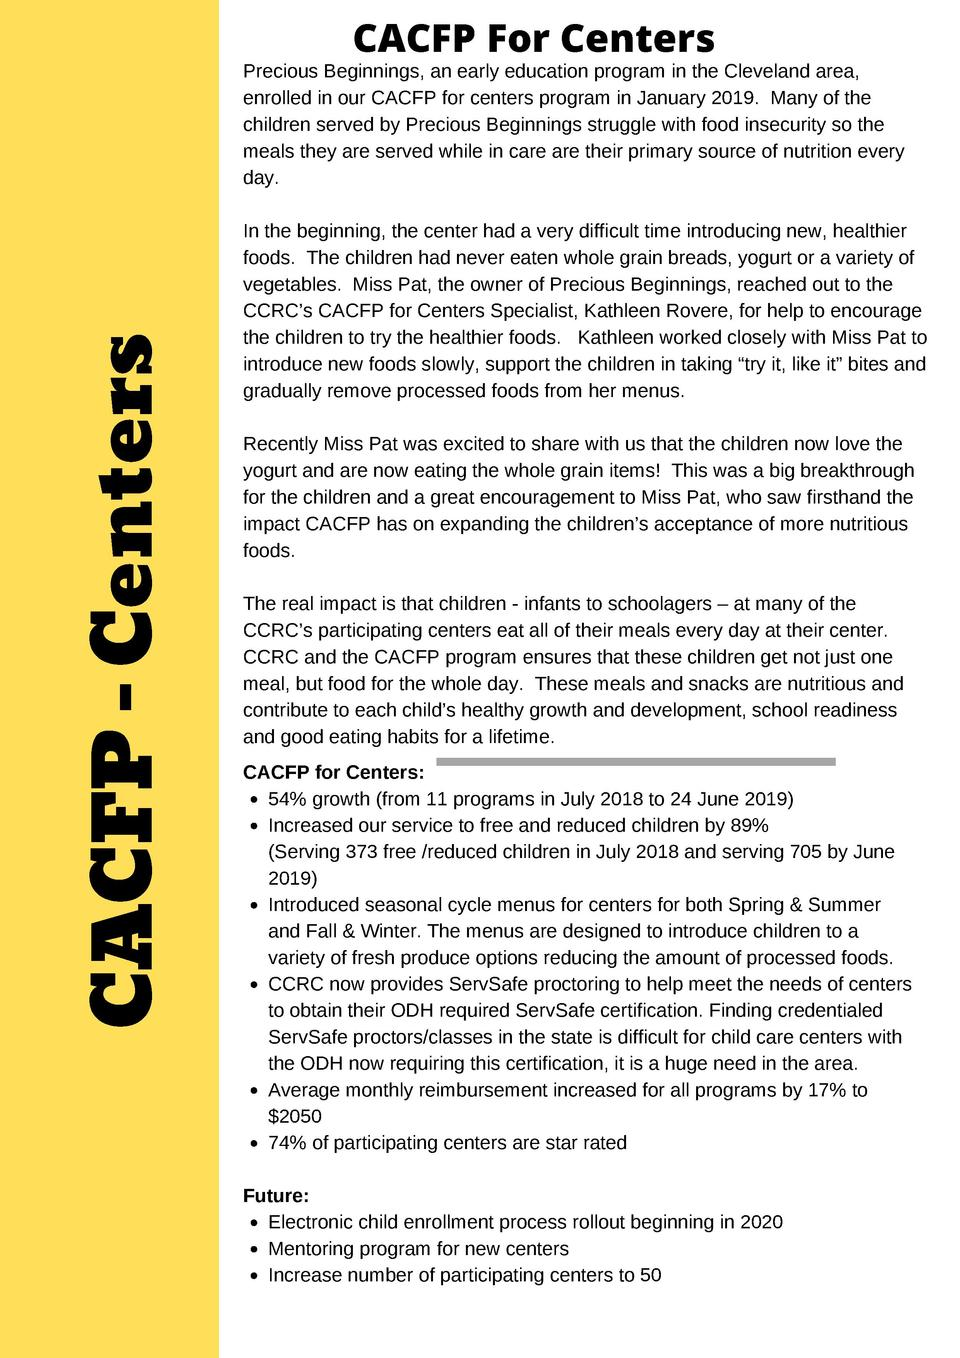 CACFP For Centers  CACFP - Centers  Precious Beginnings, an early education program in the Cleveland area, enrolled in our...